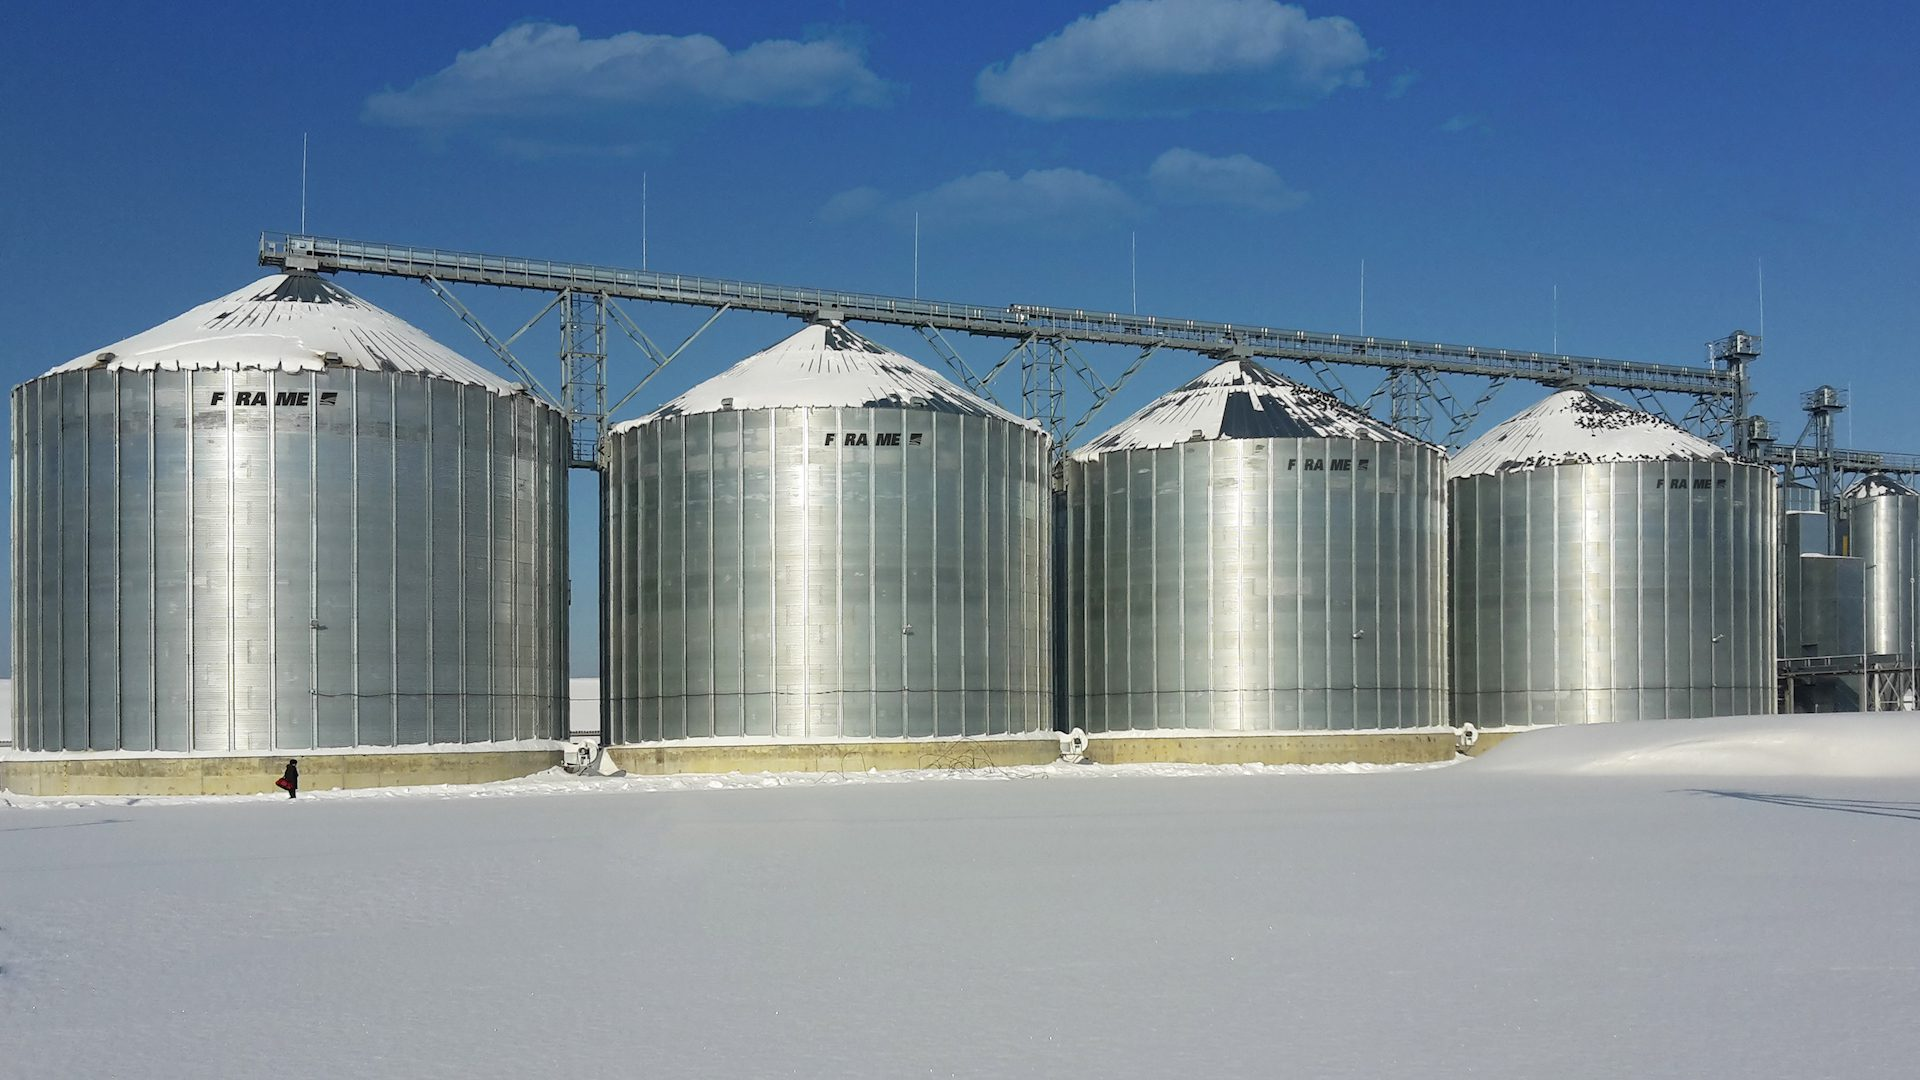 silos_russia_header_references